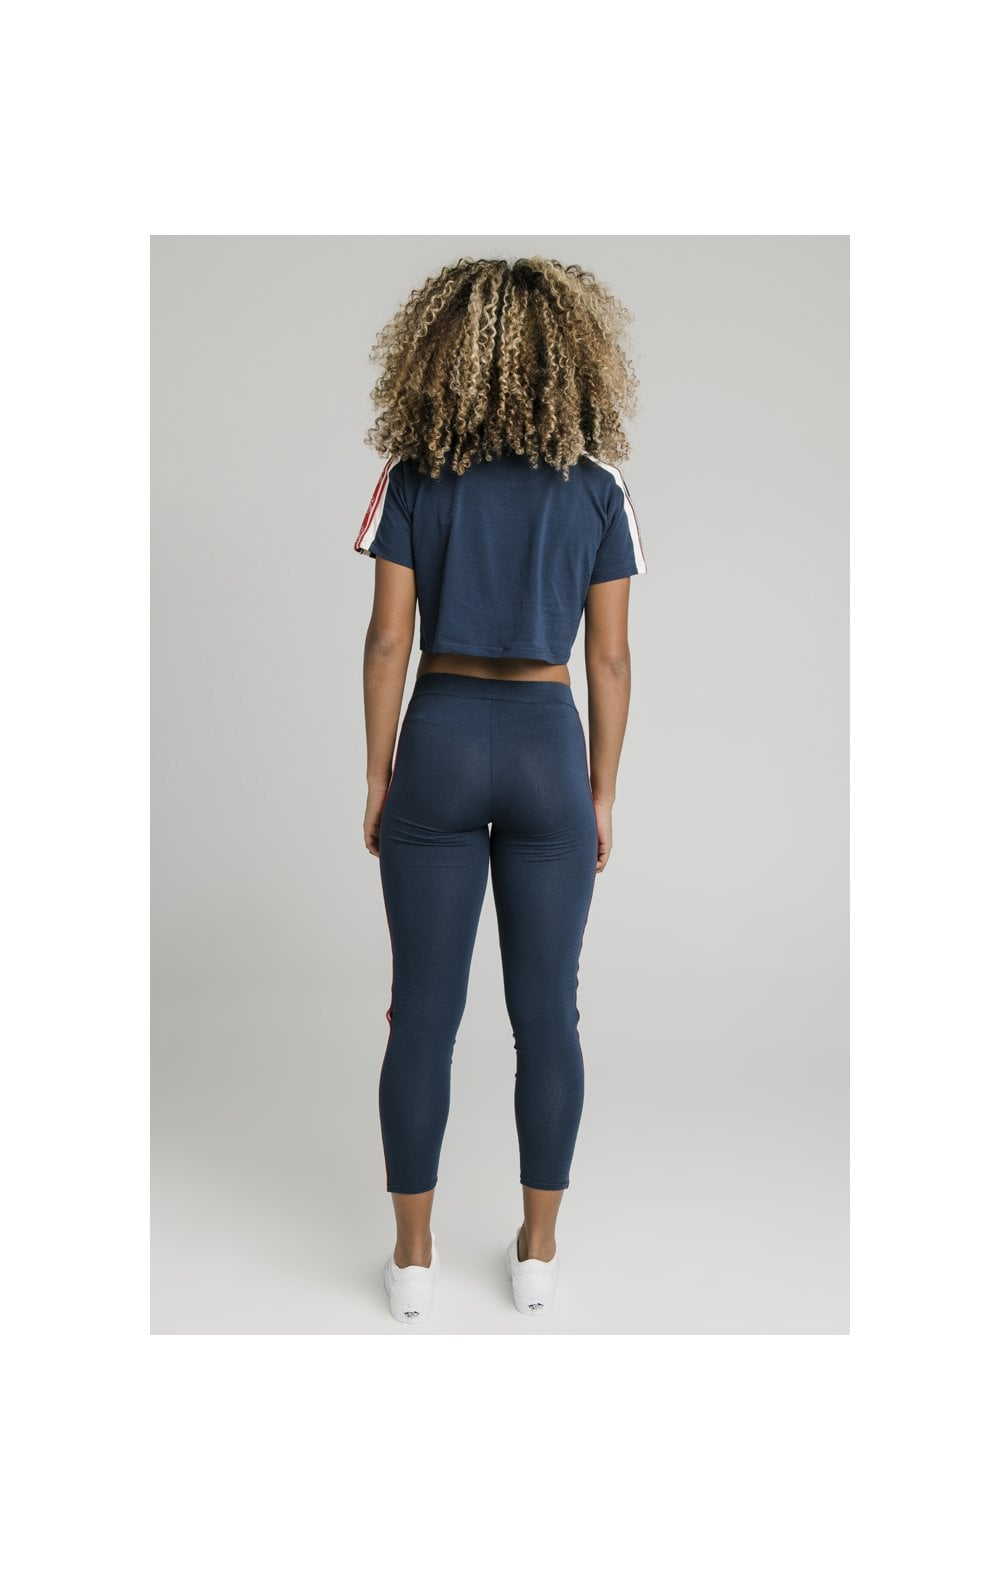 SikSilk Classic Tape Leggings - Navy (9)